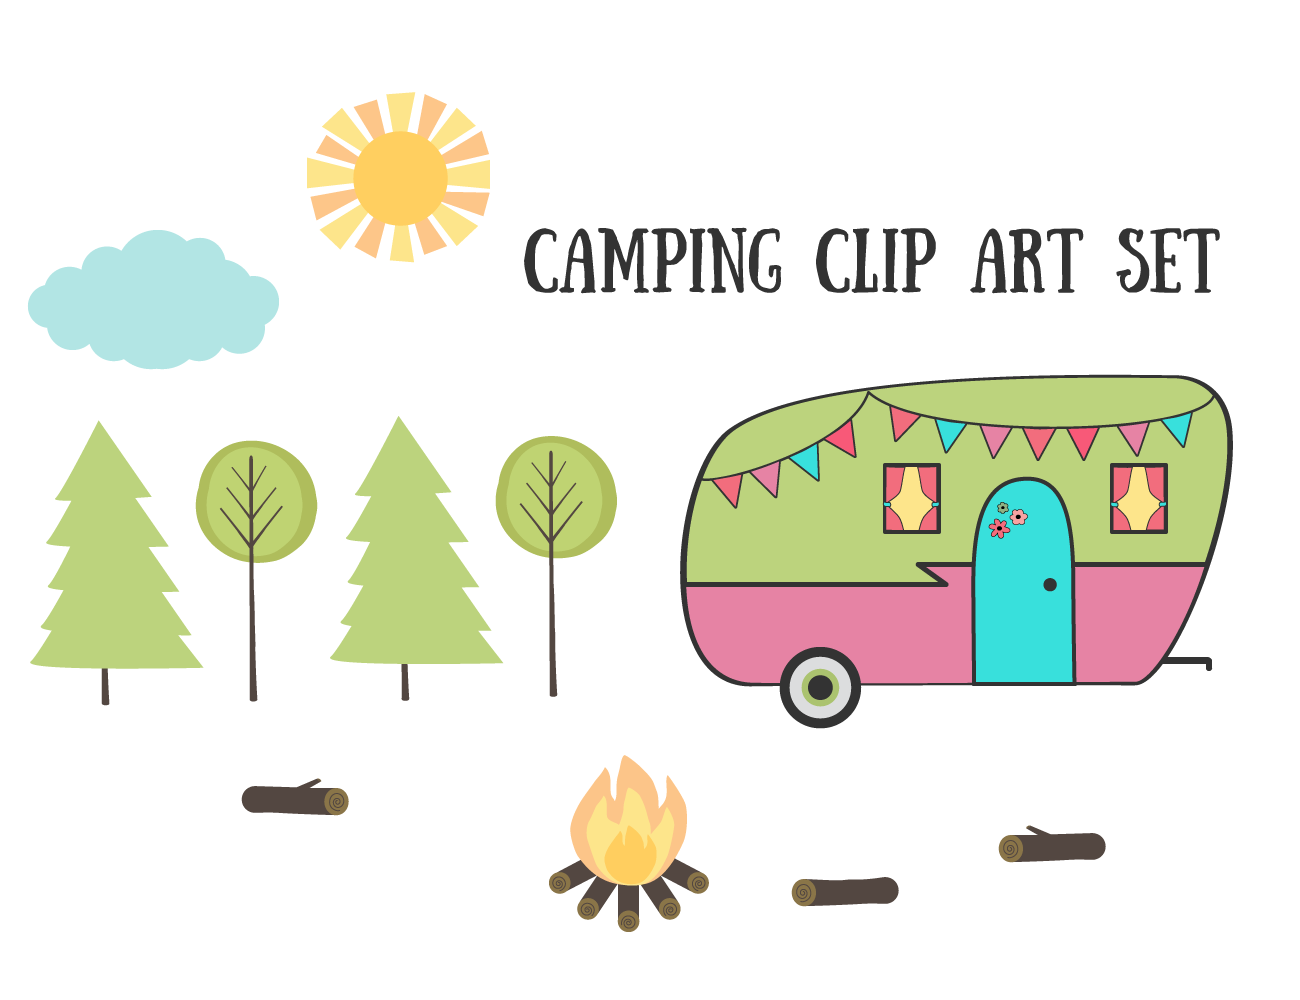 Camping clipart camper Images art campground images Collection